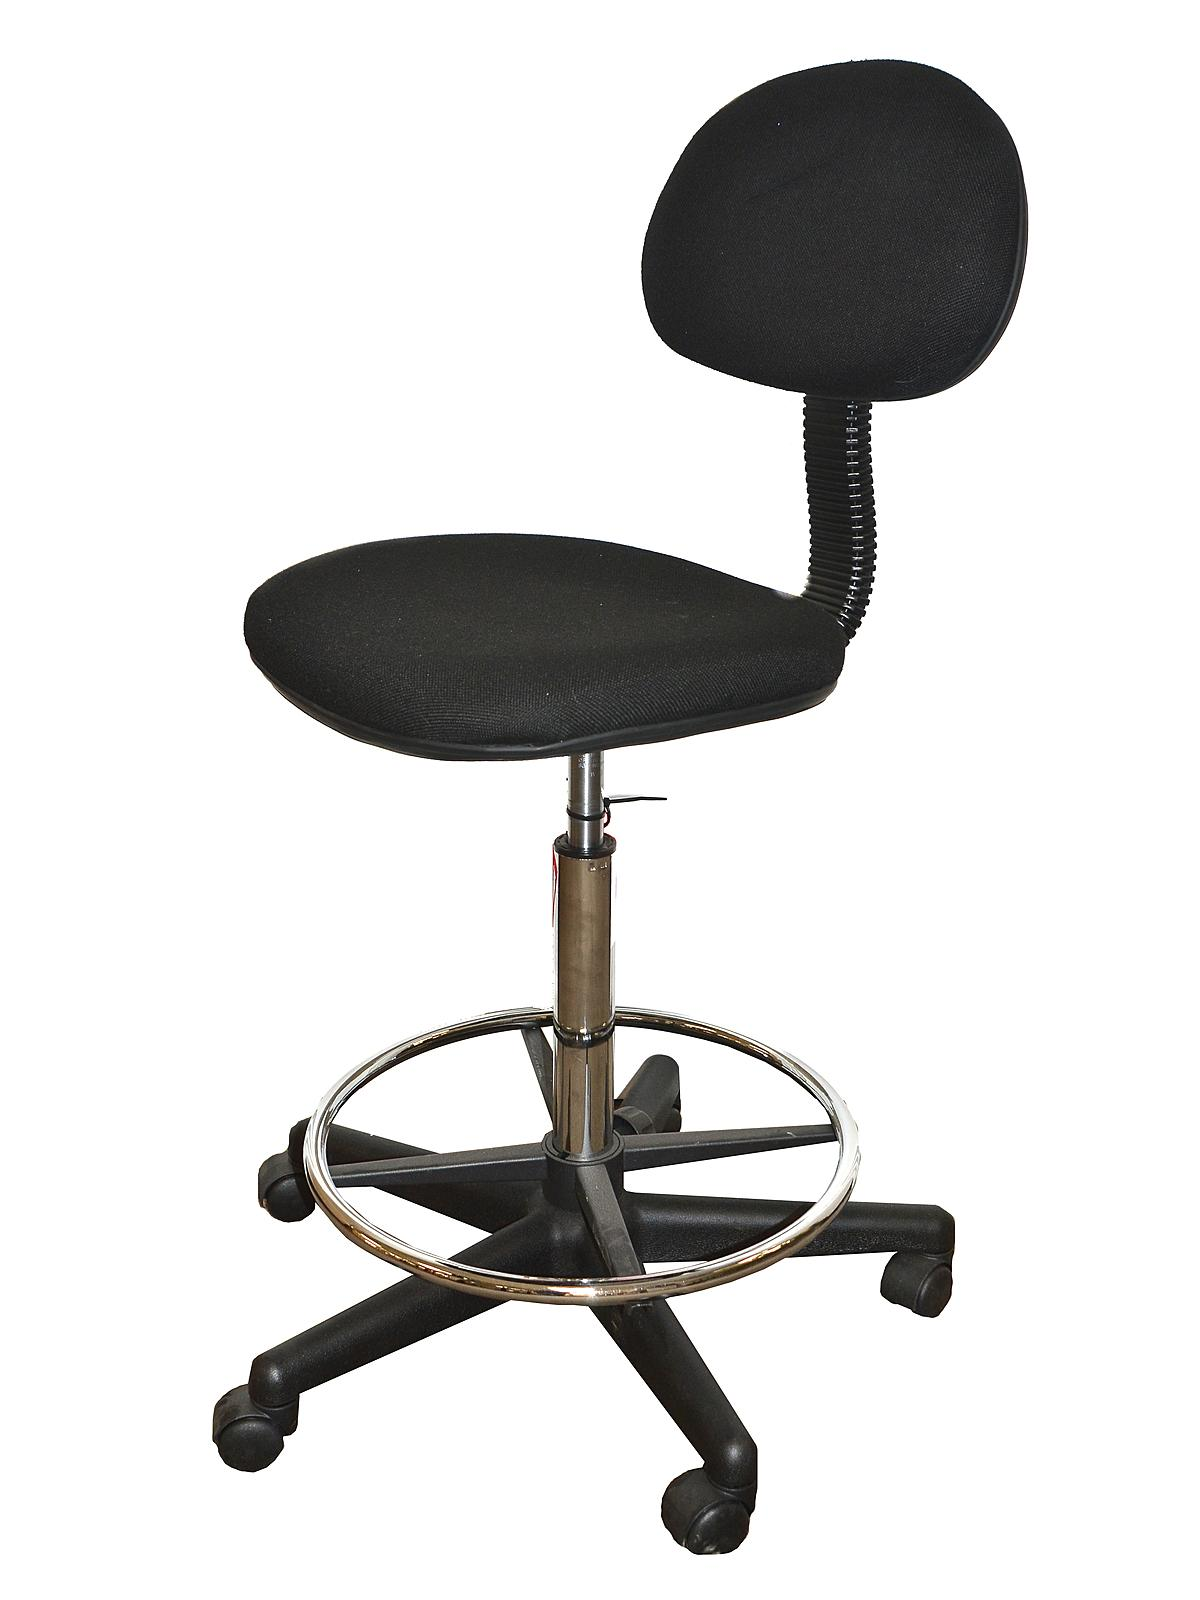 chair design studio office chairs conference room designs drafting misterart